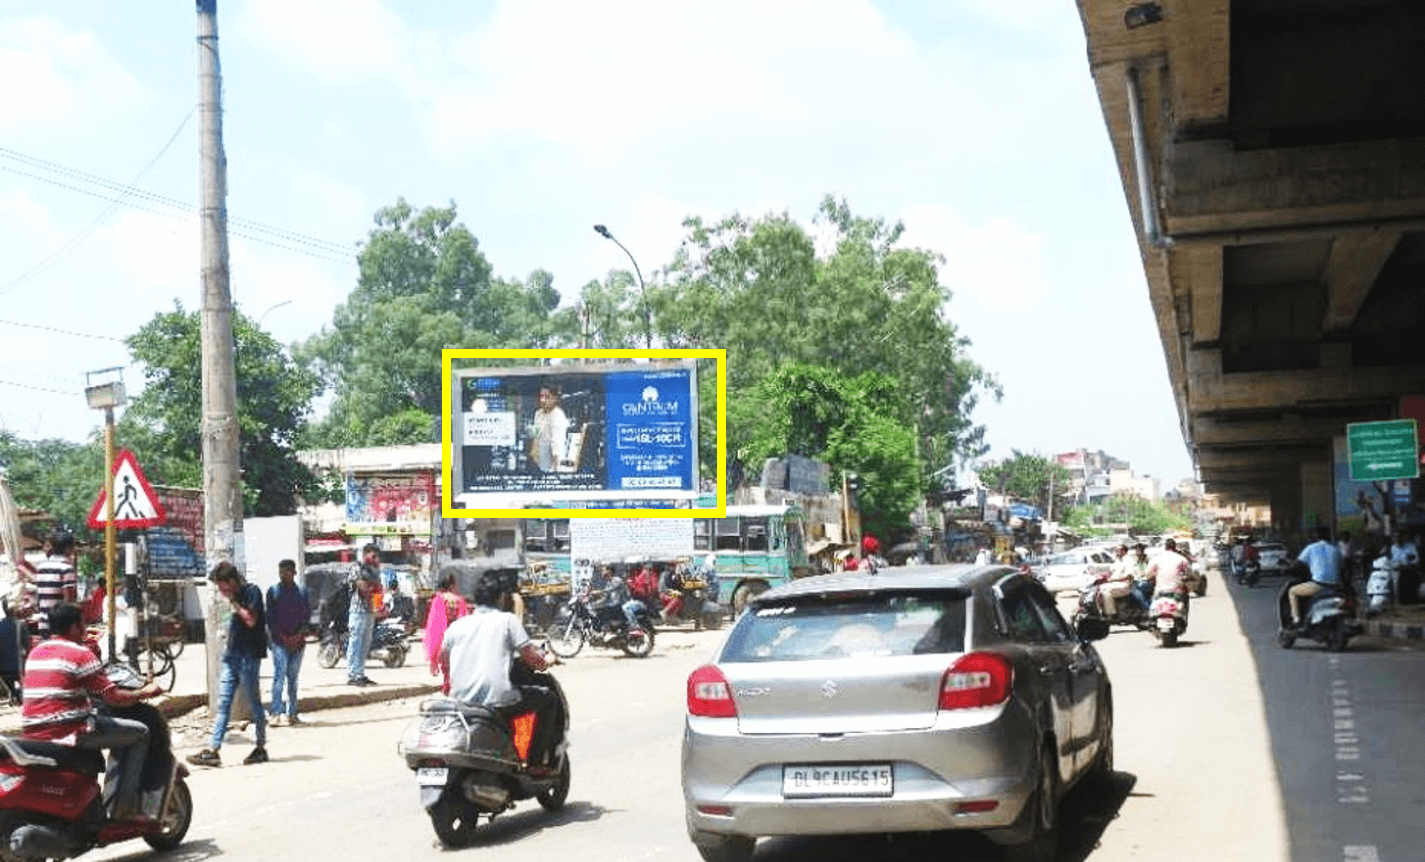 Unipole advertising at Bus stand, Derabassi